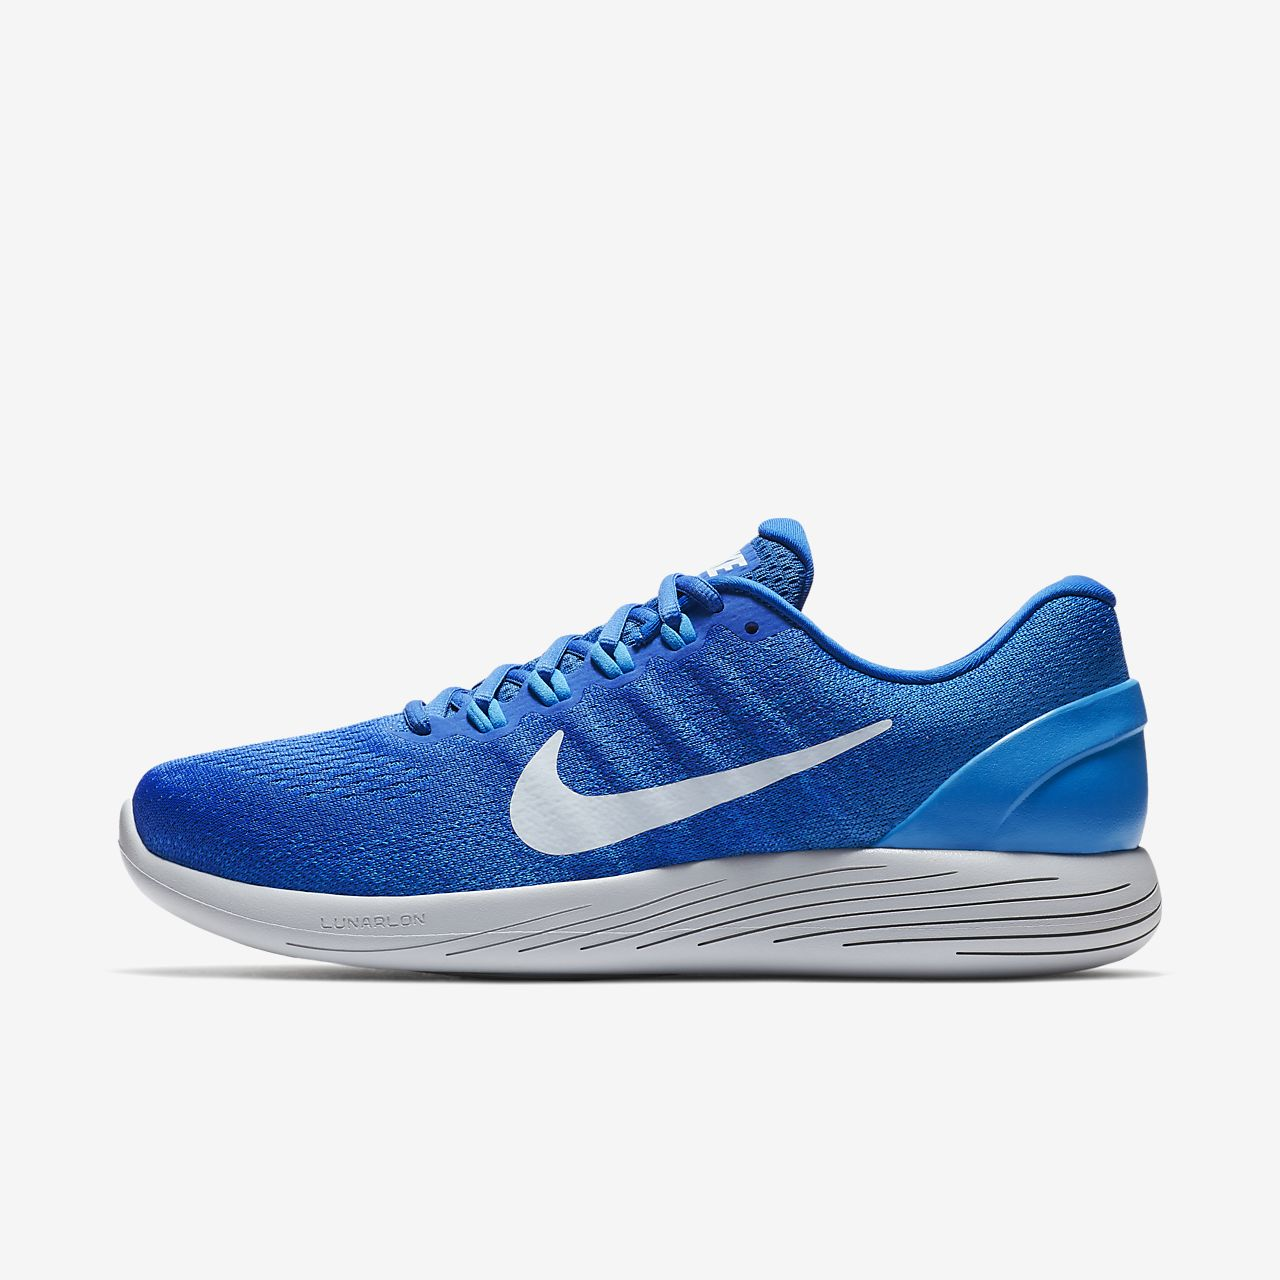 ... Nike LunarGlide 9 Men's Running Shoe